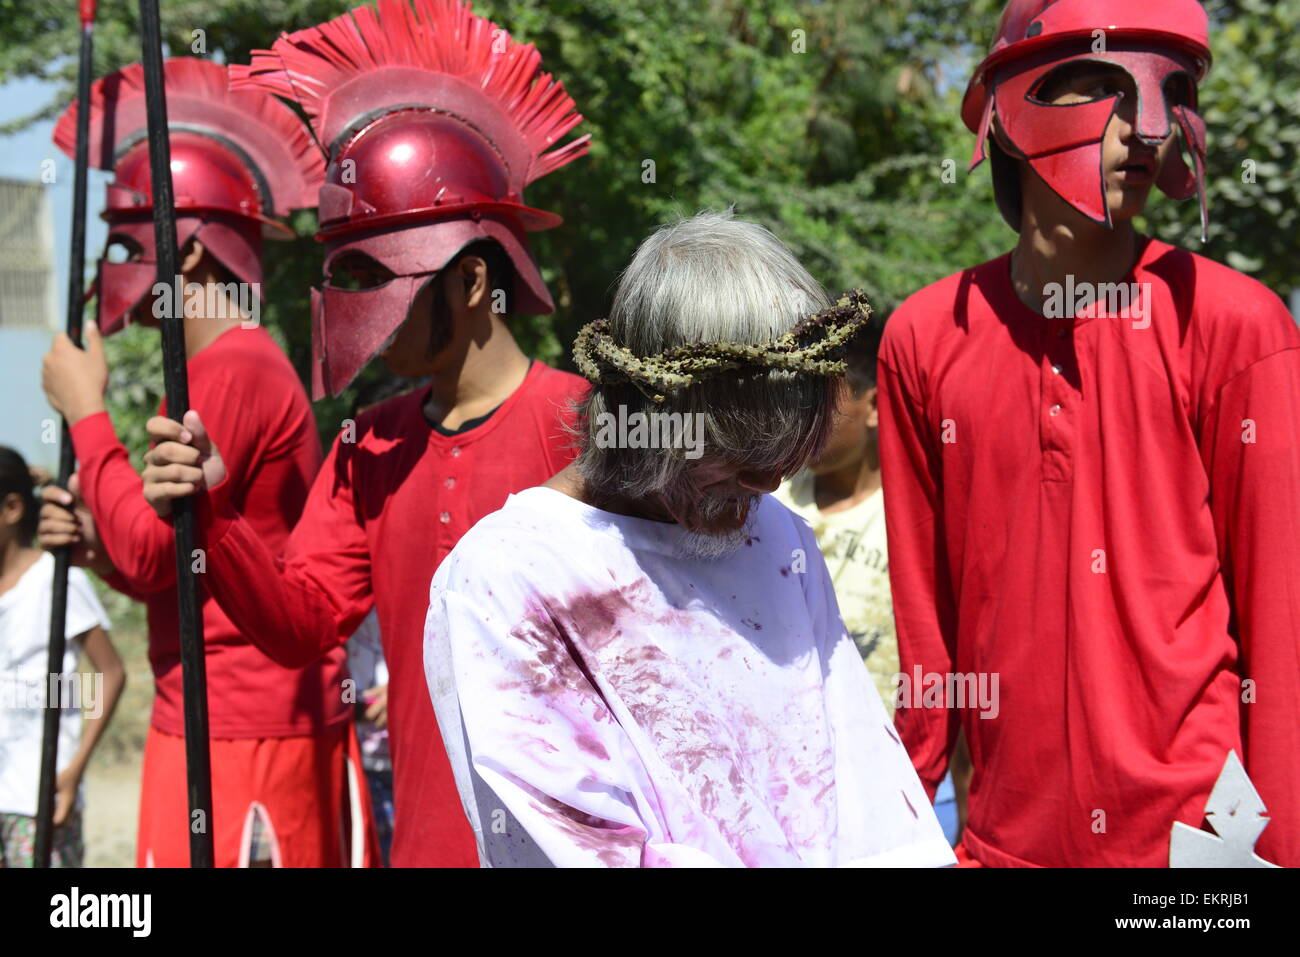 'Good Friday' Crucifixions in Pampanga, Philippines. - Stock Image